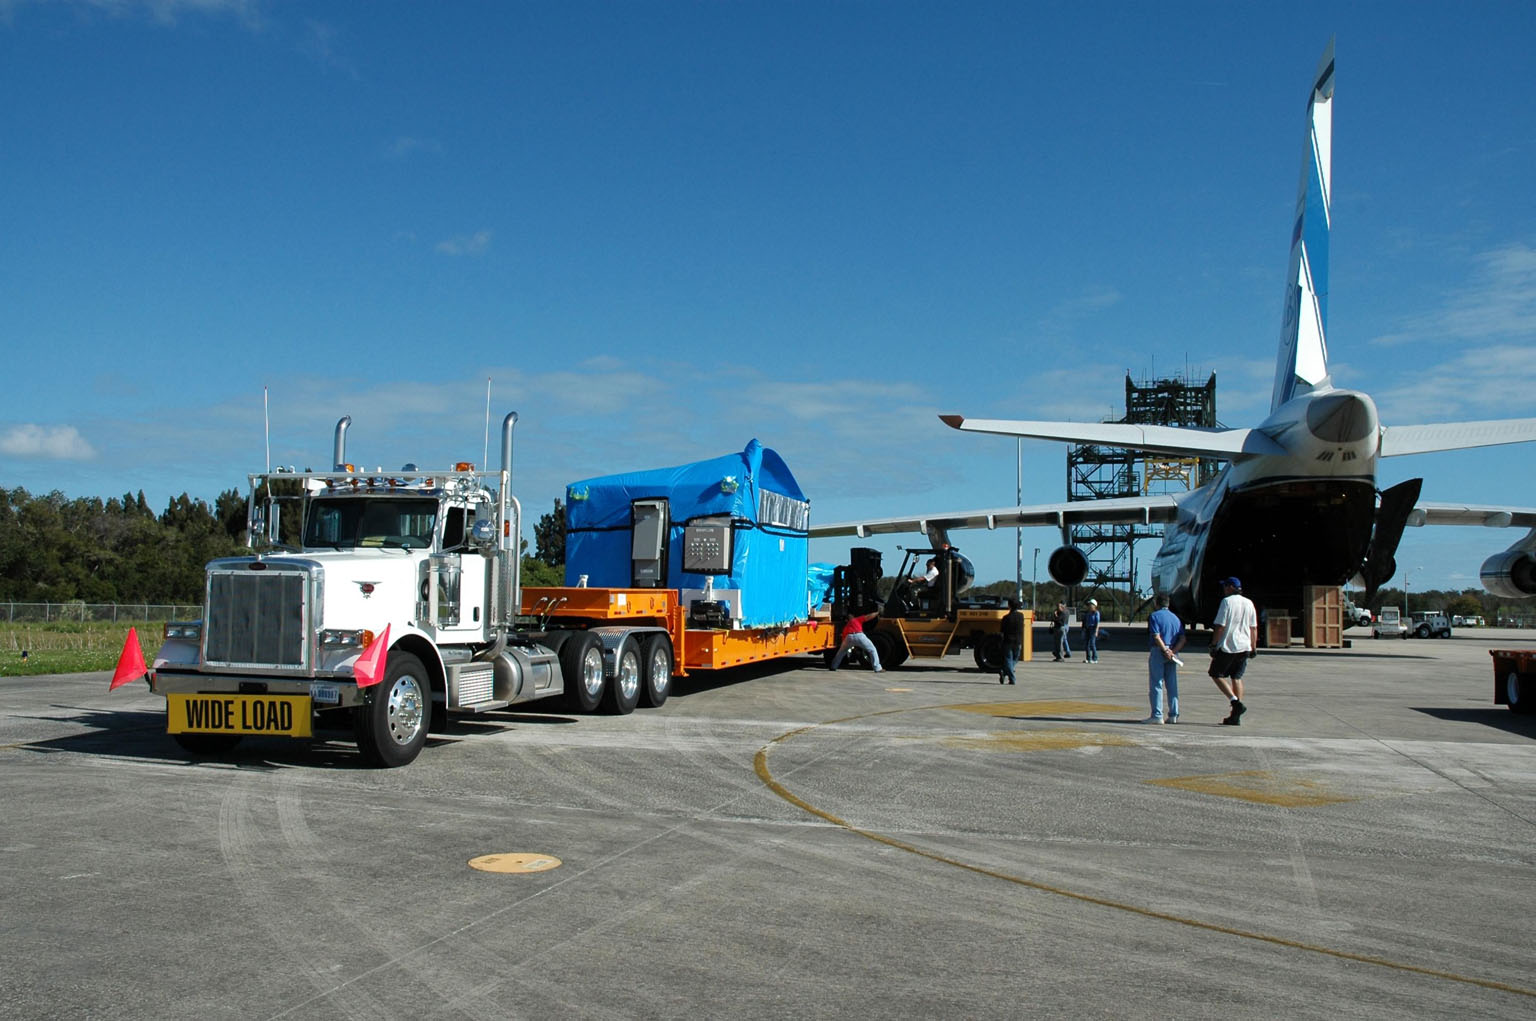 """KENNEDY SPACE CENTER, FLA. -- Offloading of the cargo complete, the truck is ready to move the remote manipulator system for the Japanese Experiment Module to the Space Station Processing Facility. The JEM, named """"Kibo"""" (Hope), is Japan's primary contribution to the International Space Station. It will enhance the unique research capabilities of the orbiting complex by providing an additional environment for astronauts to conduct science experiments. The Japanese Aerospace Exploration Agency developed the laboratory. Both the JEM and RMS are targeted for mission STS-124, to launch in early 2008. Photo credit: NASA/Dimitrios Gerondidakis"""